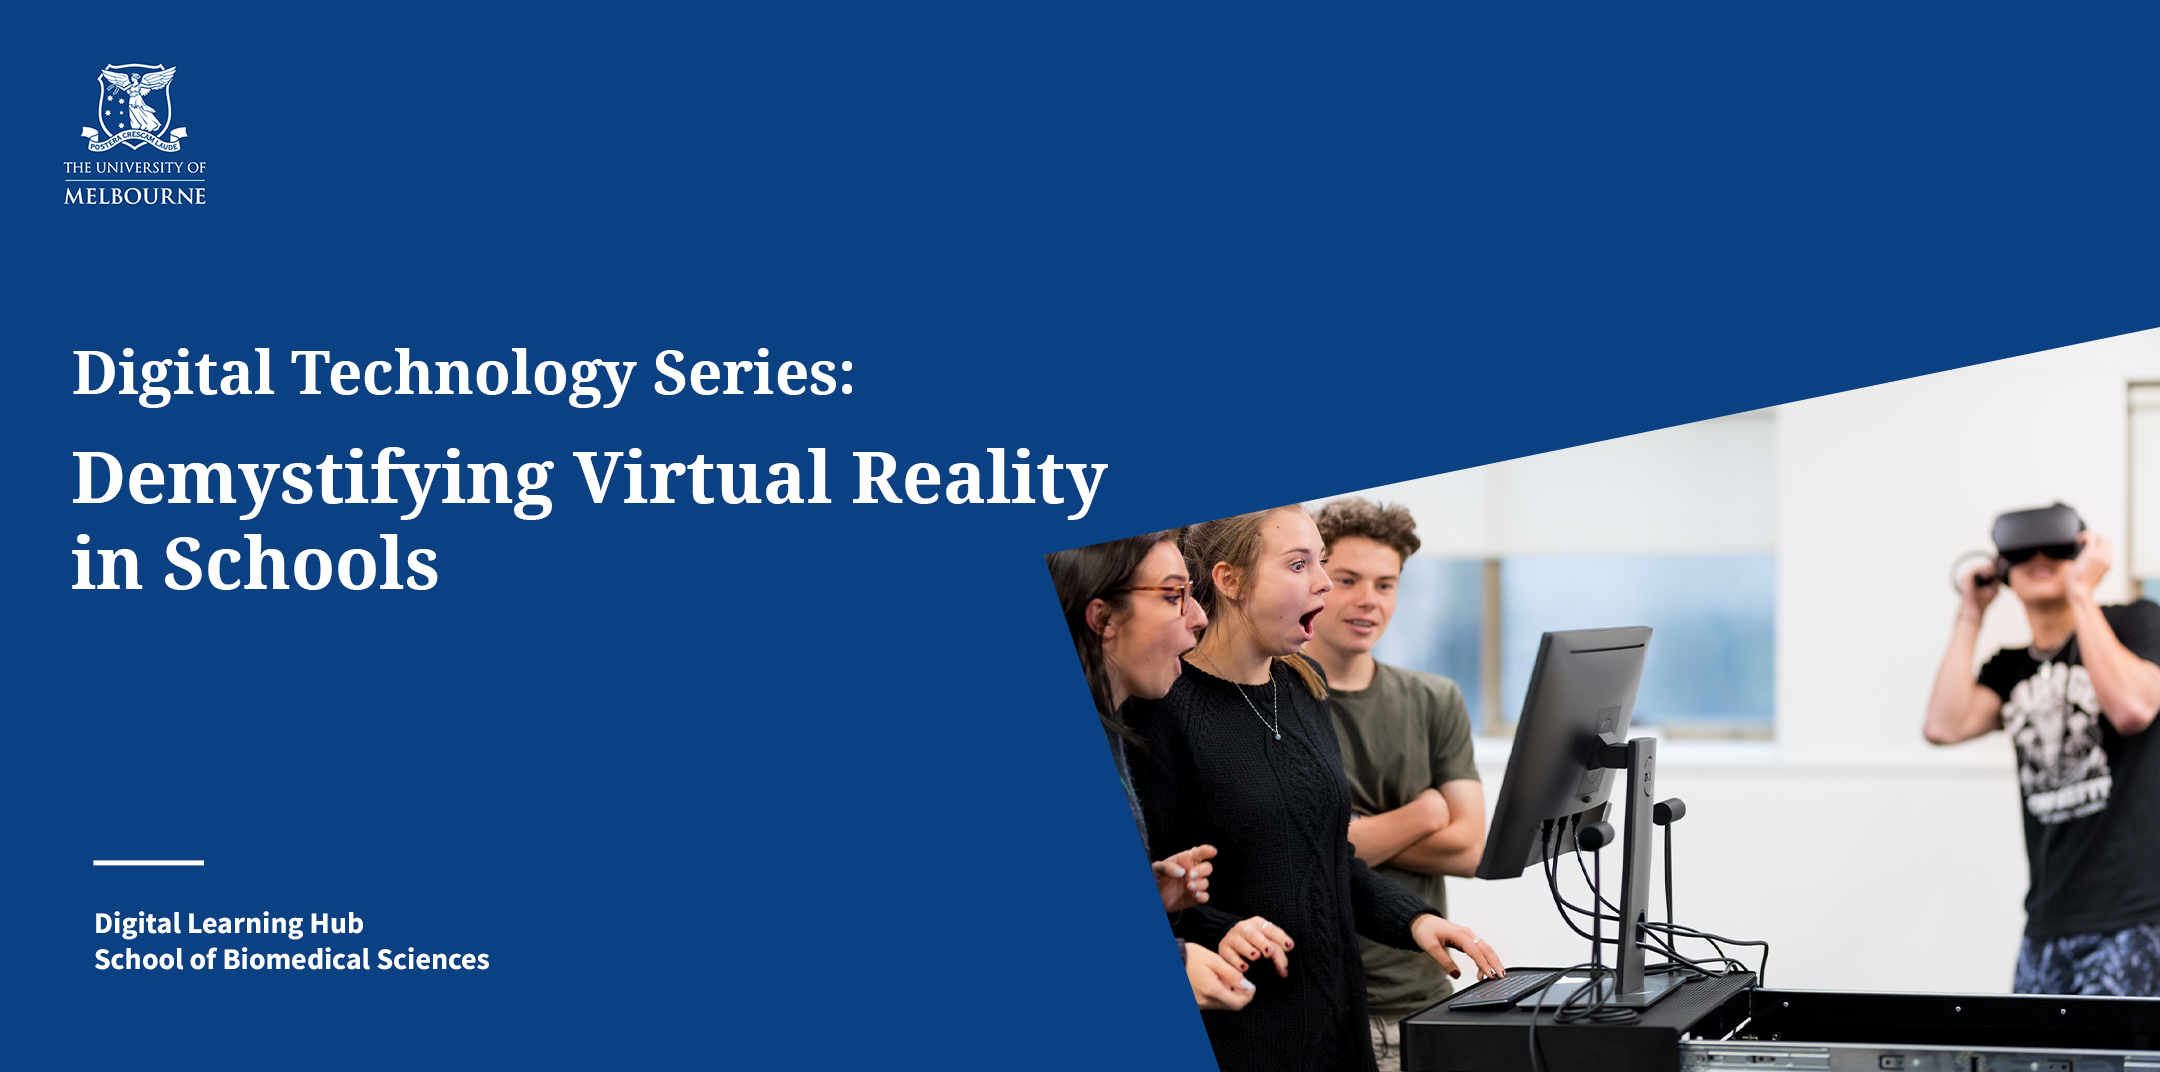 Banner image with text: Digital Technology Series: Demystifying Virtual Reality in Schools